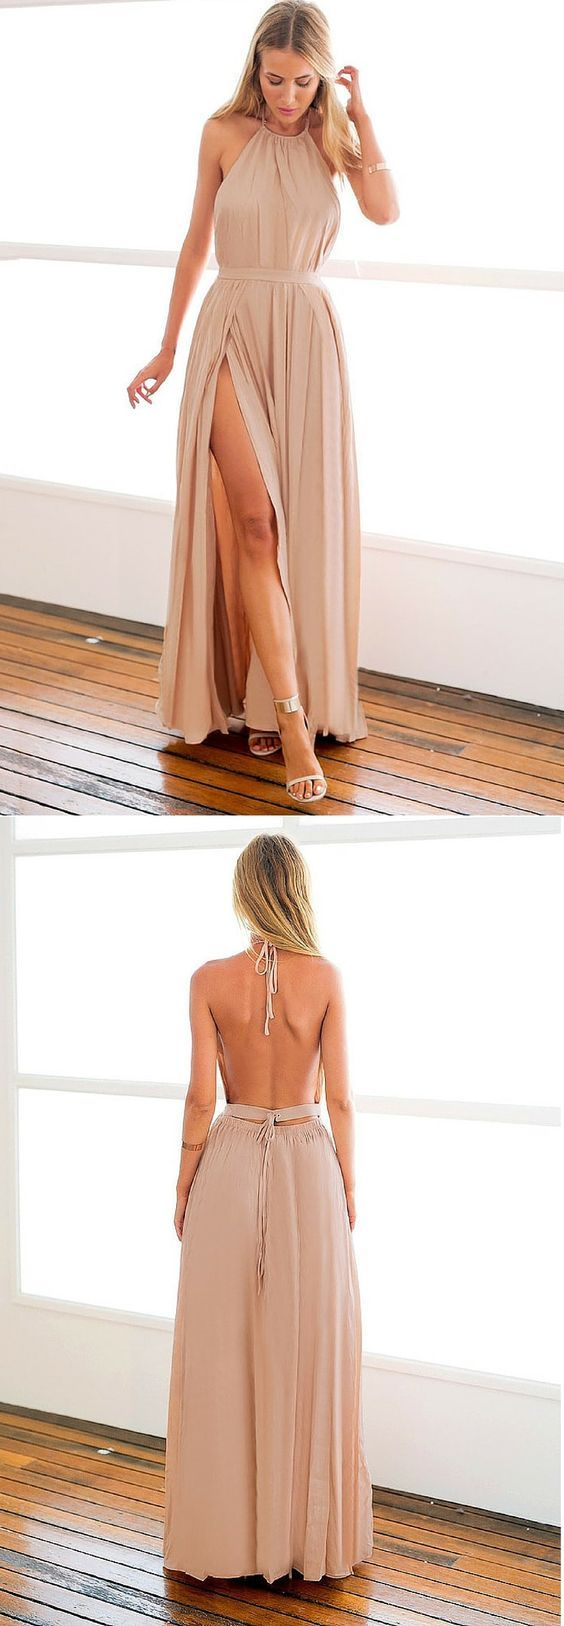 Halter Nude Maxi Dress, Sexy Backless Prom Dress, Slit Prom Dress, Nude M-slit Halter Dress, Party Dress  $122 + $30 shipping